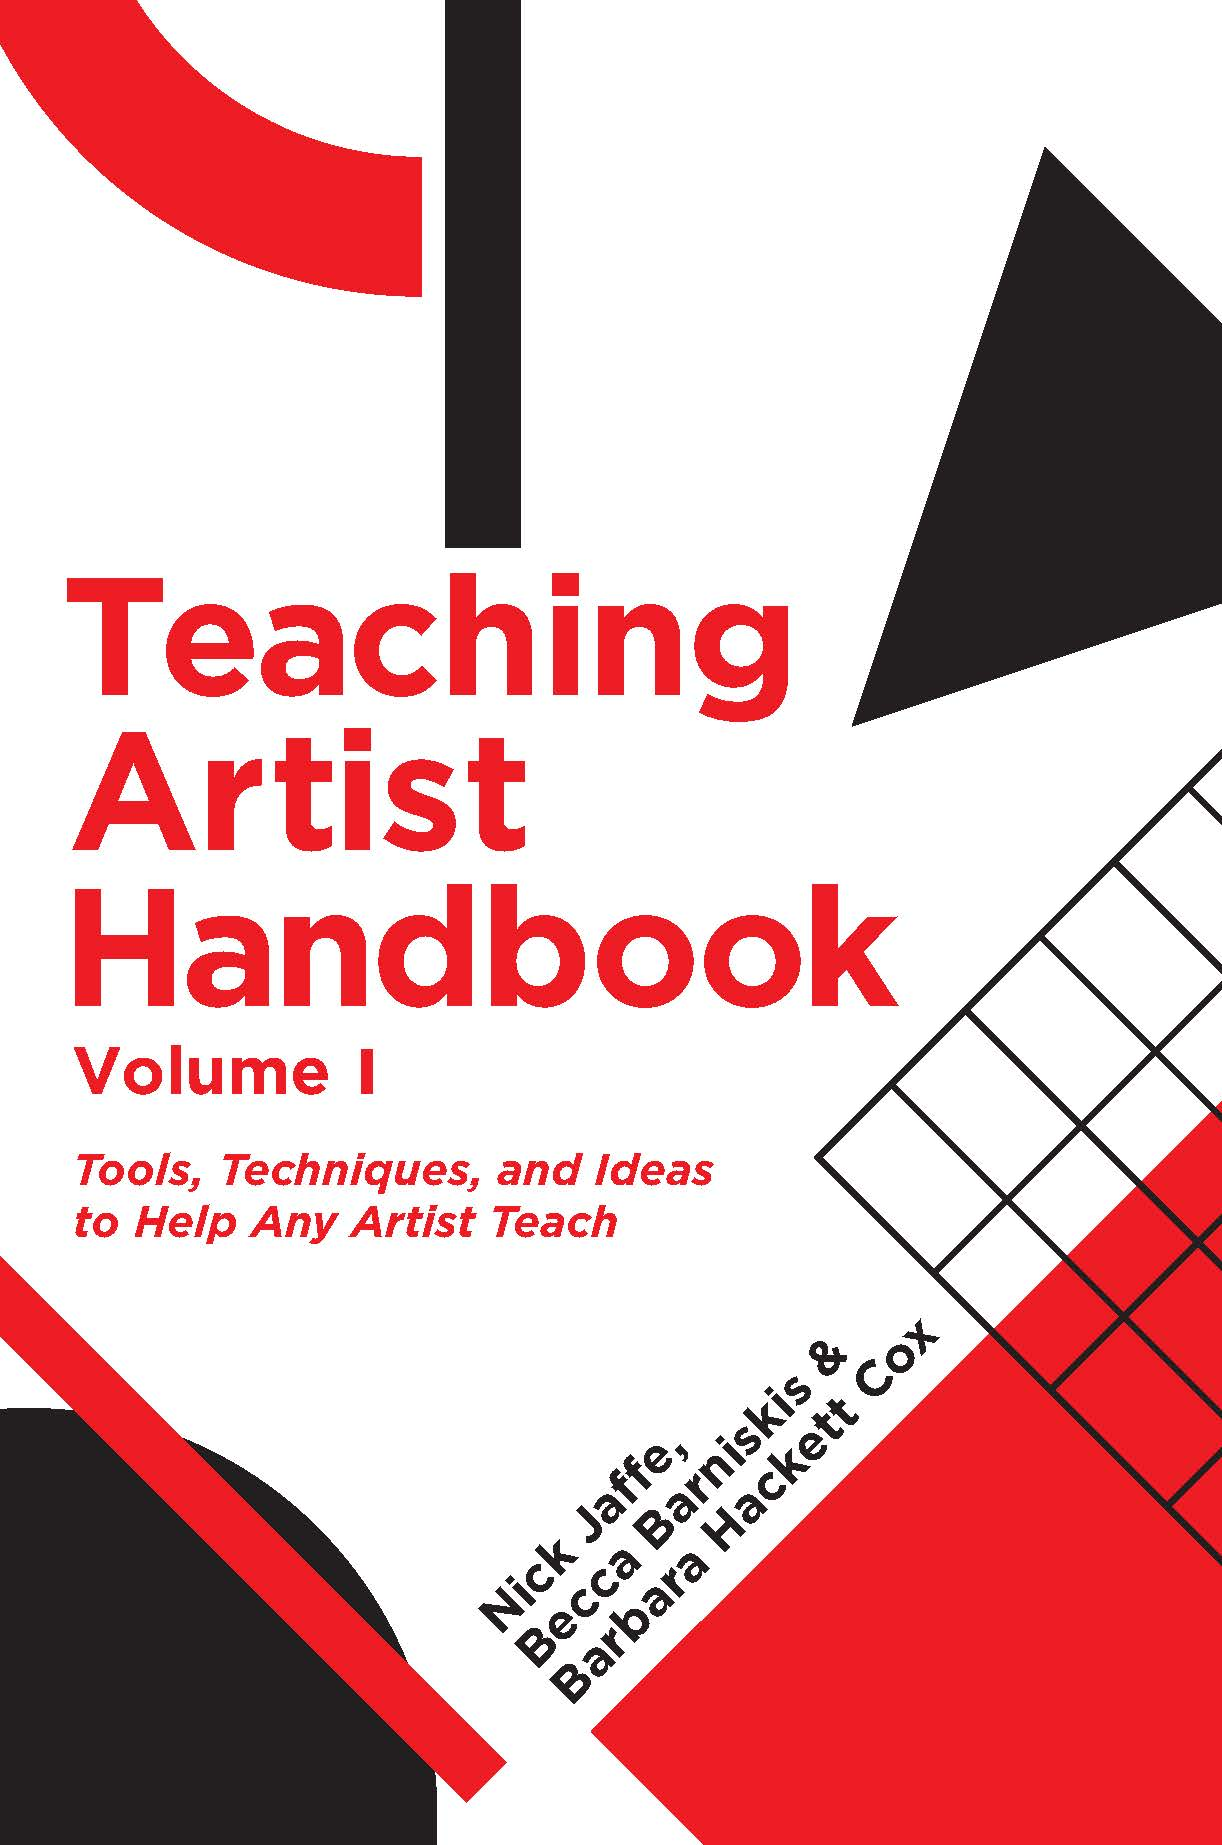 Teaching Artist Handbook, Volume One: Tools, Techniques, and Ideas to Help Any Artist Teach